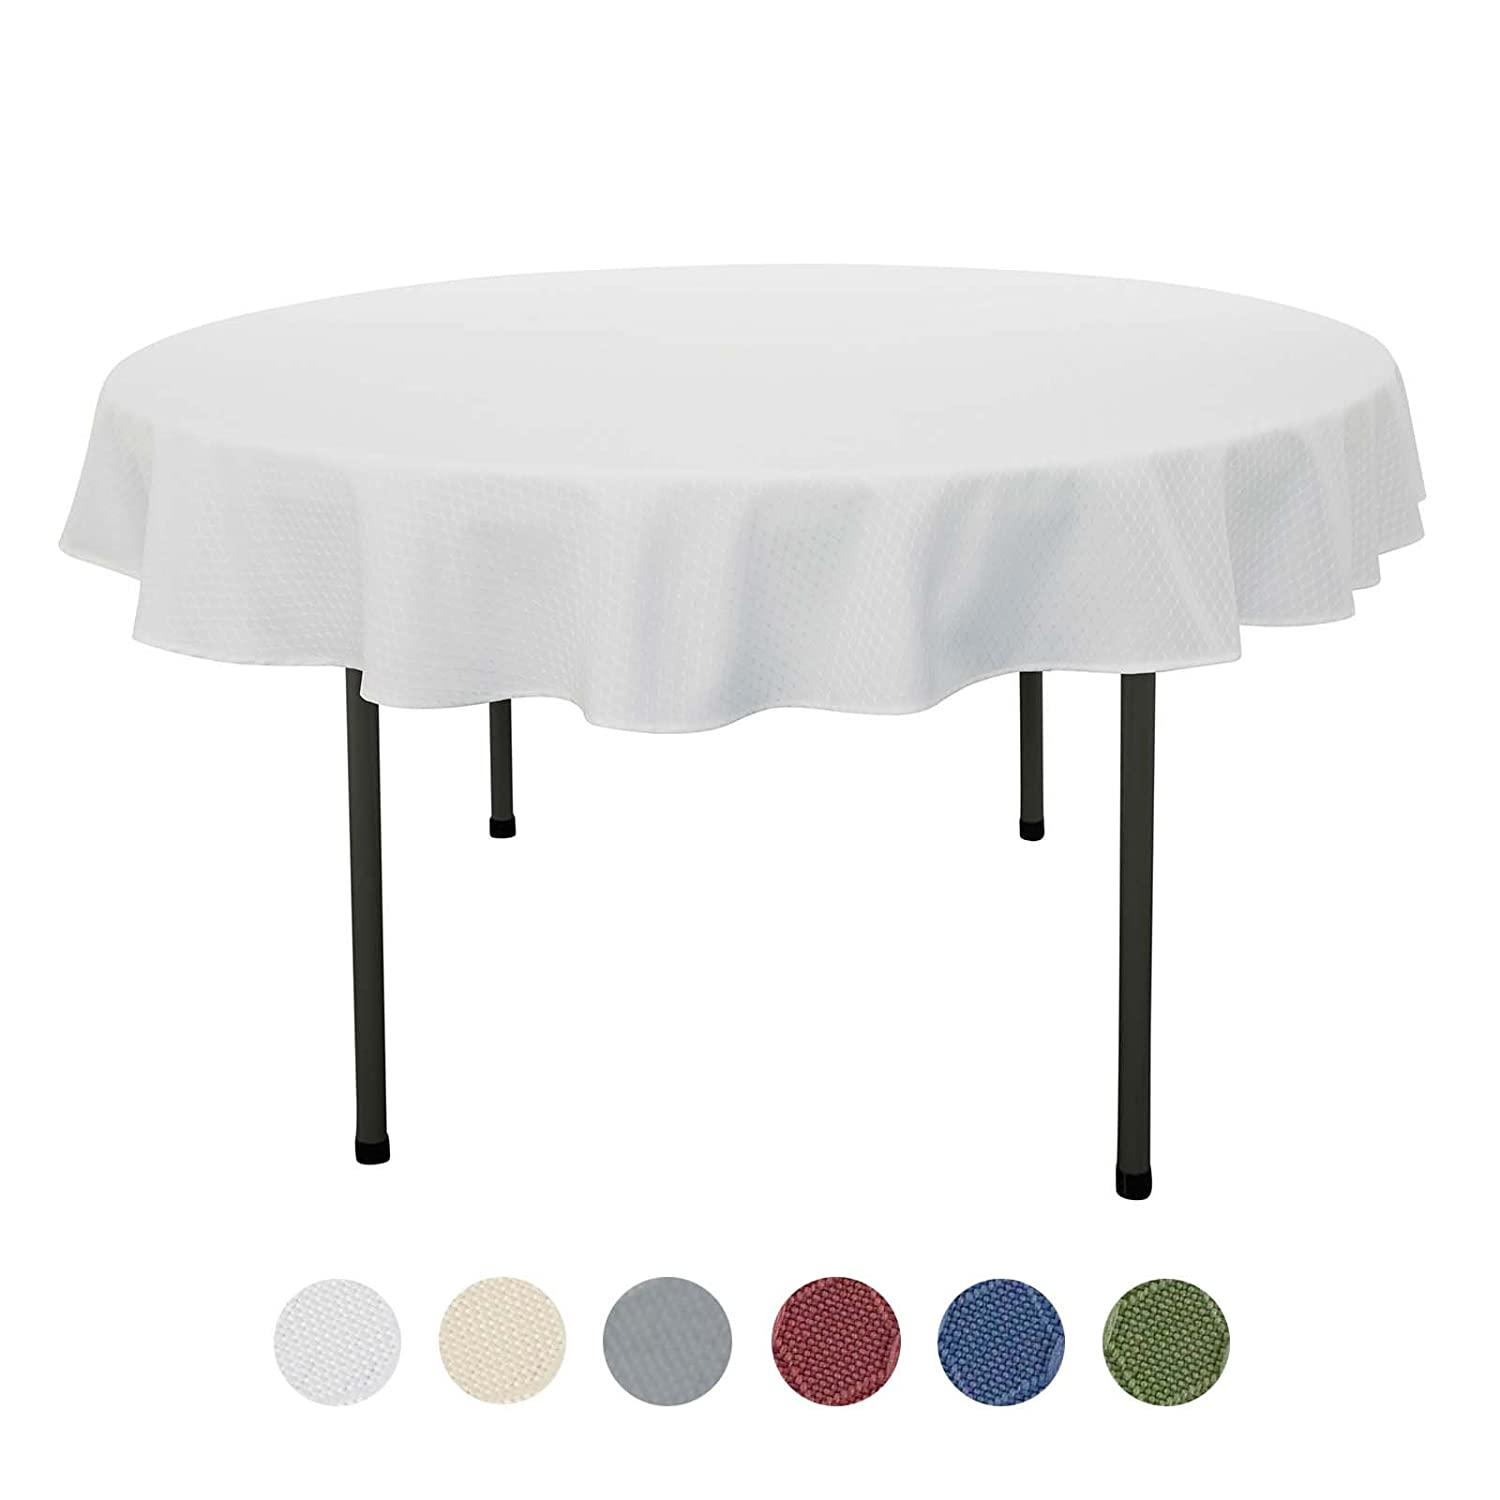 VEEYOO 60 inch Waffle Jacquard Round Polyester Spillproof Tablecloth for Restaurant Kitchen Dining Party Venue Decor, Pearl White